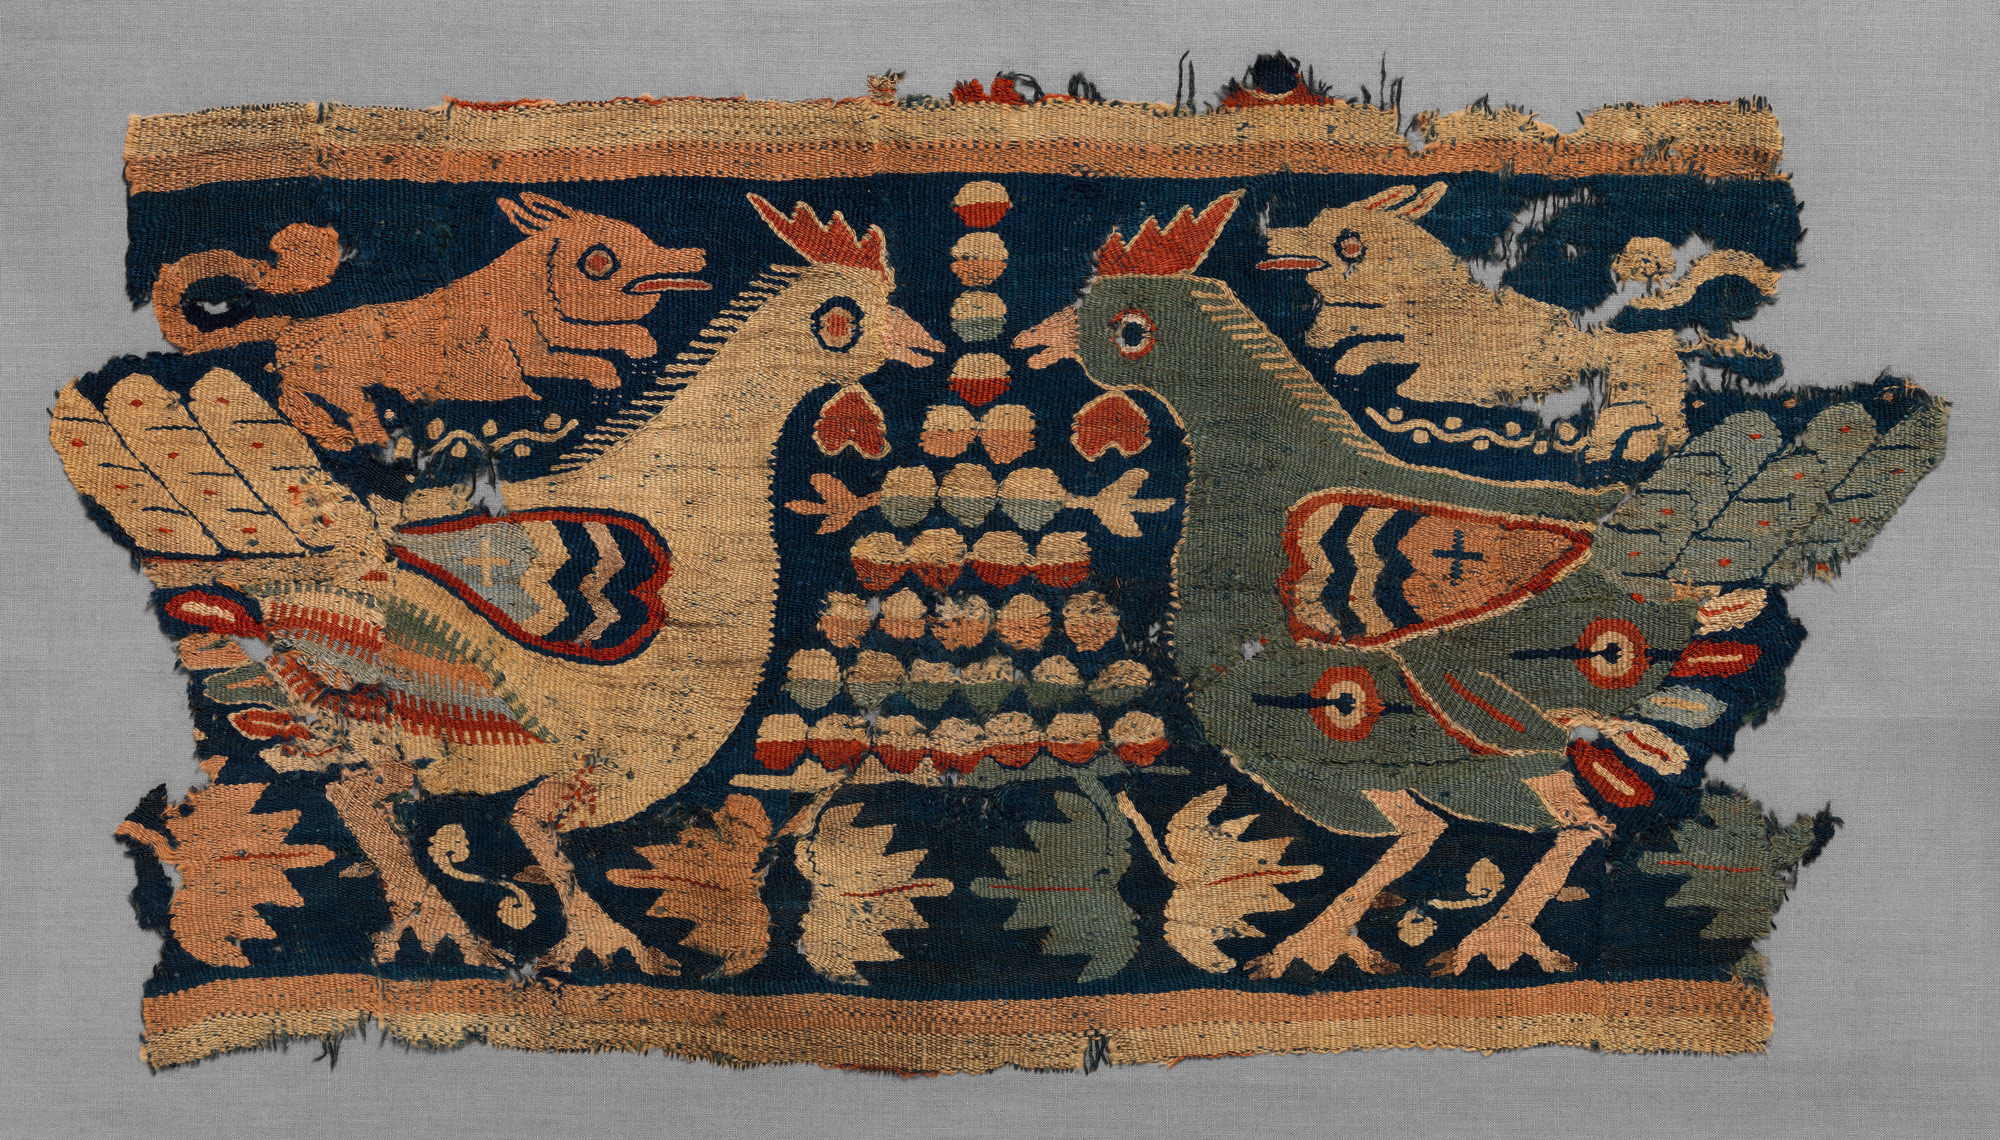 Fragment of Wall Hanging with confronted cocks and running dogs